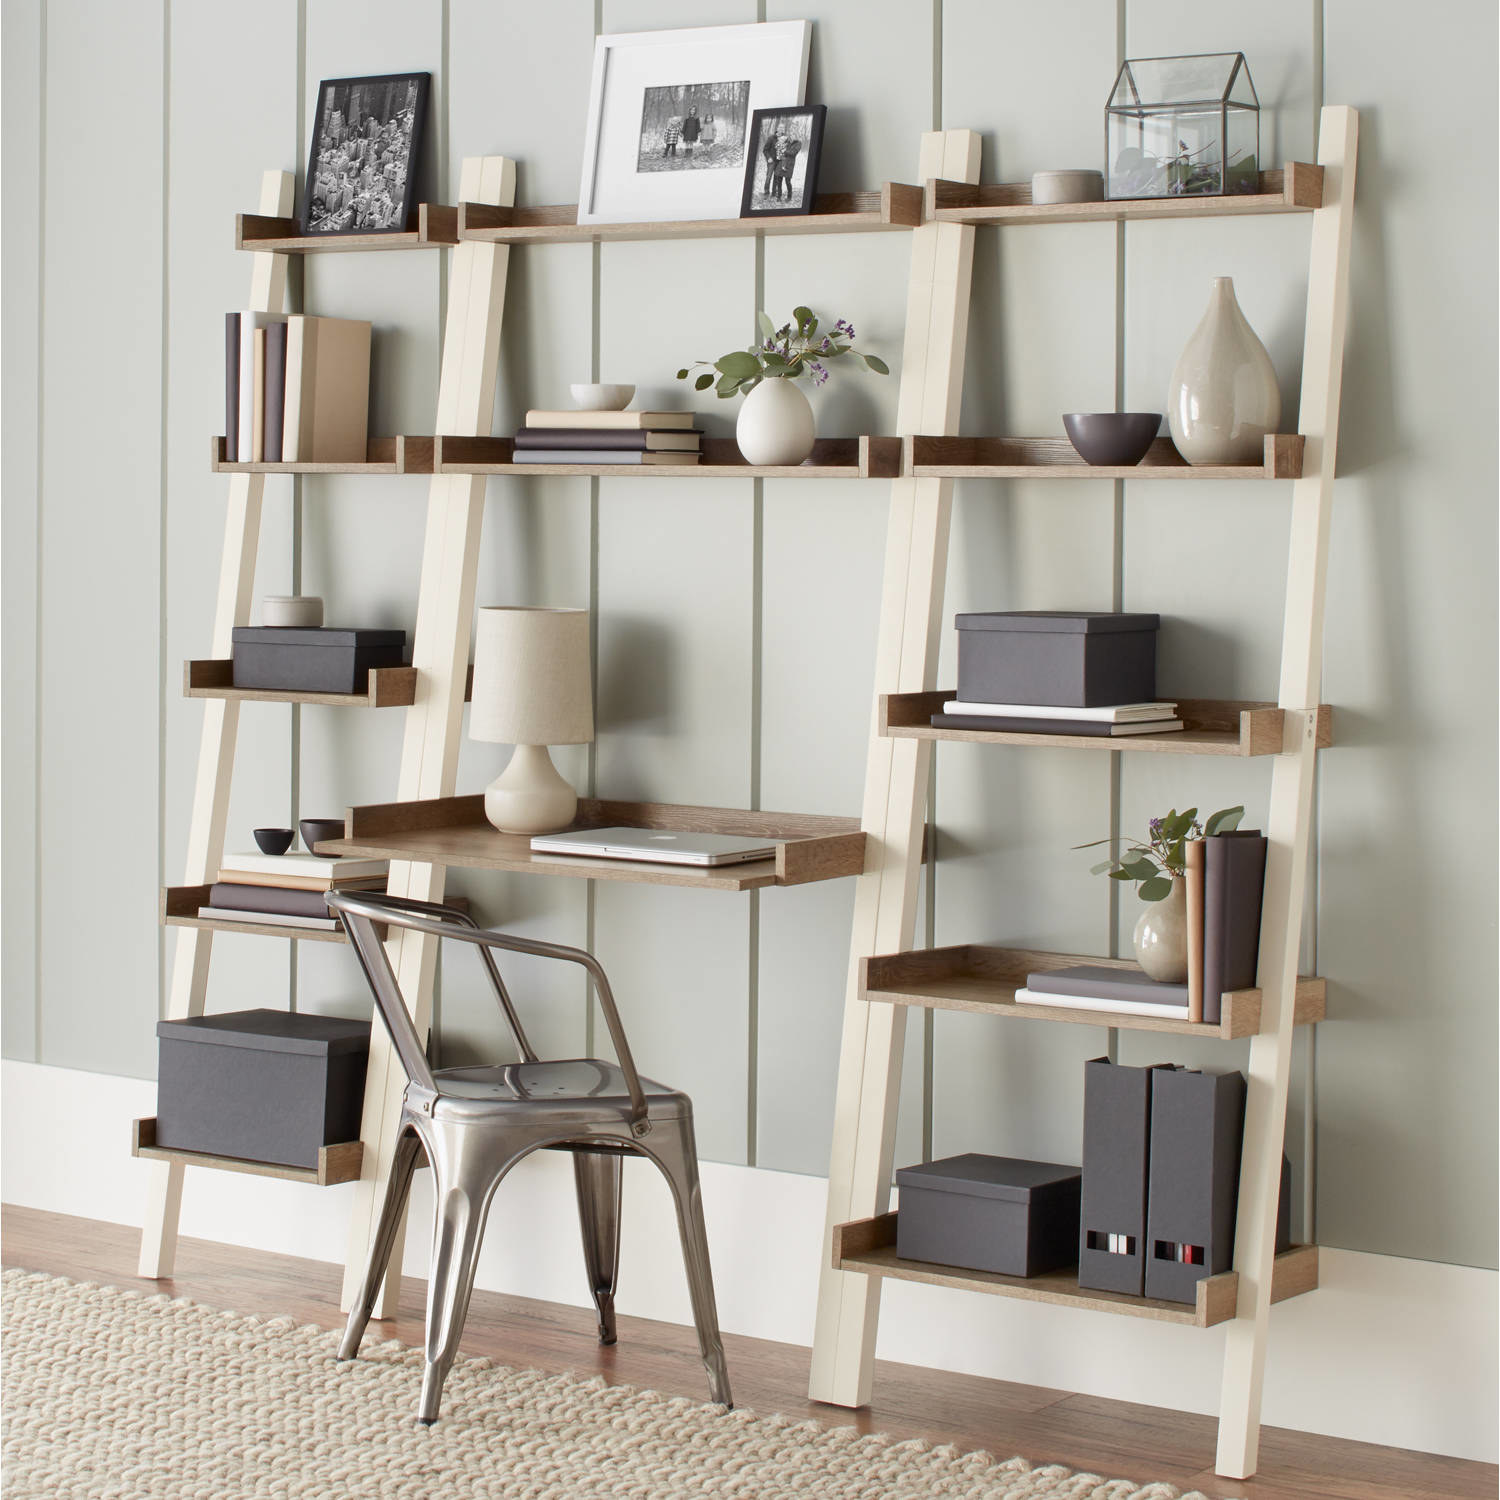 Wooden leaning desk with shelf attachments